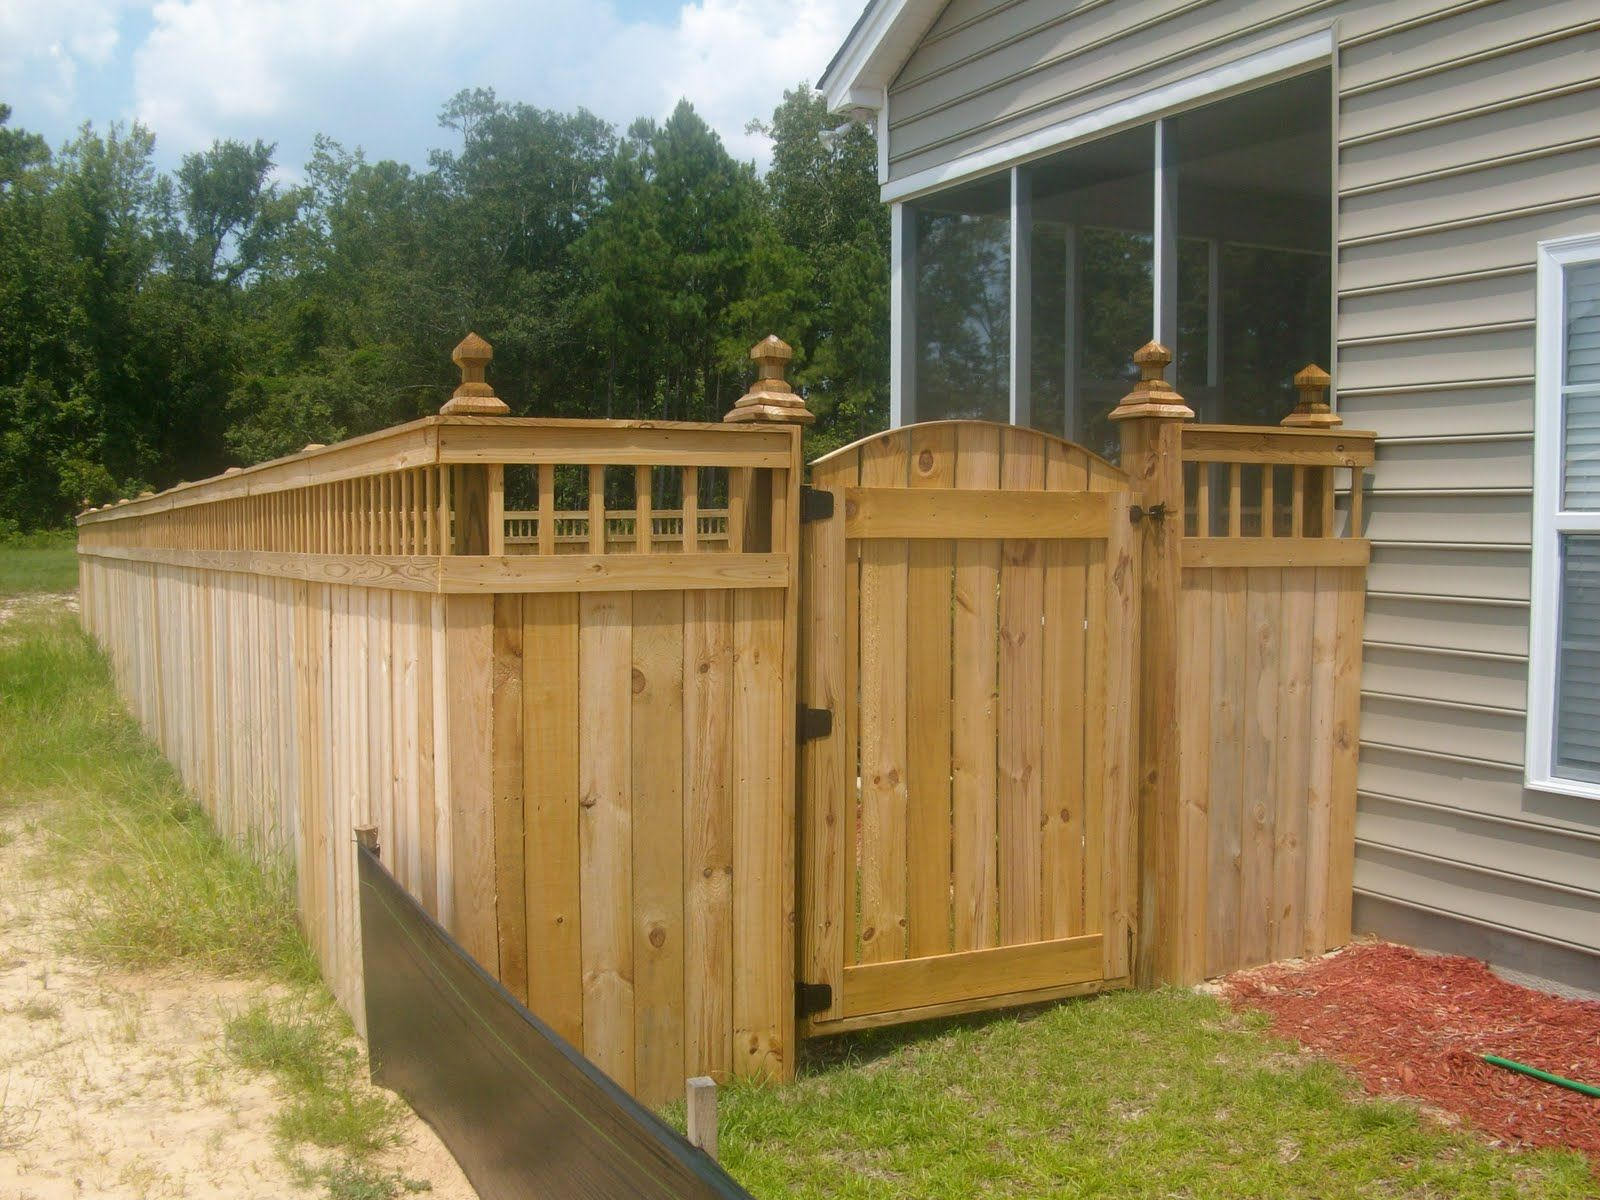 Unique privacy fence ideas spindle lattice moss grove fence gate unique privacy fence ideas spindle lattice moss grove fence gate design custom moncks corner baanklon Choice Image